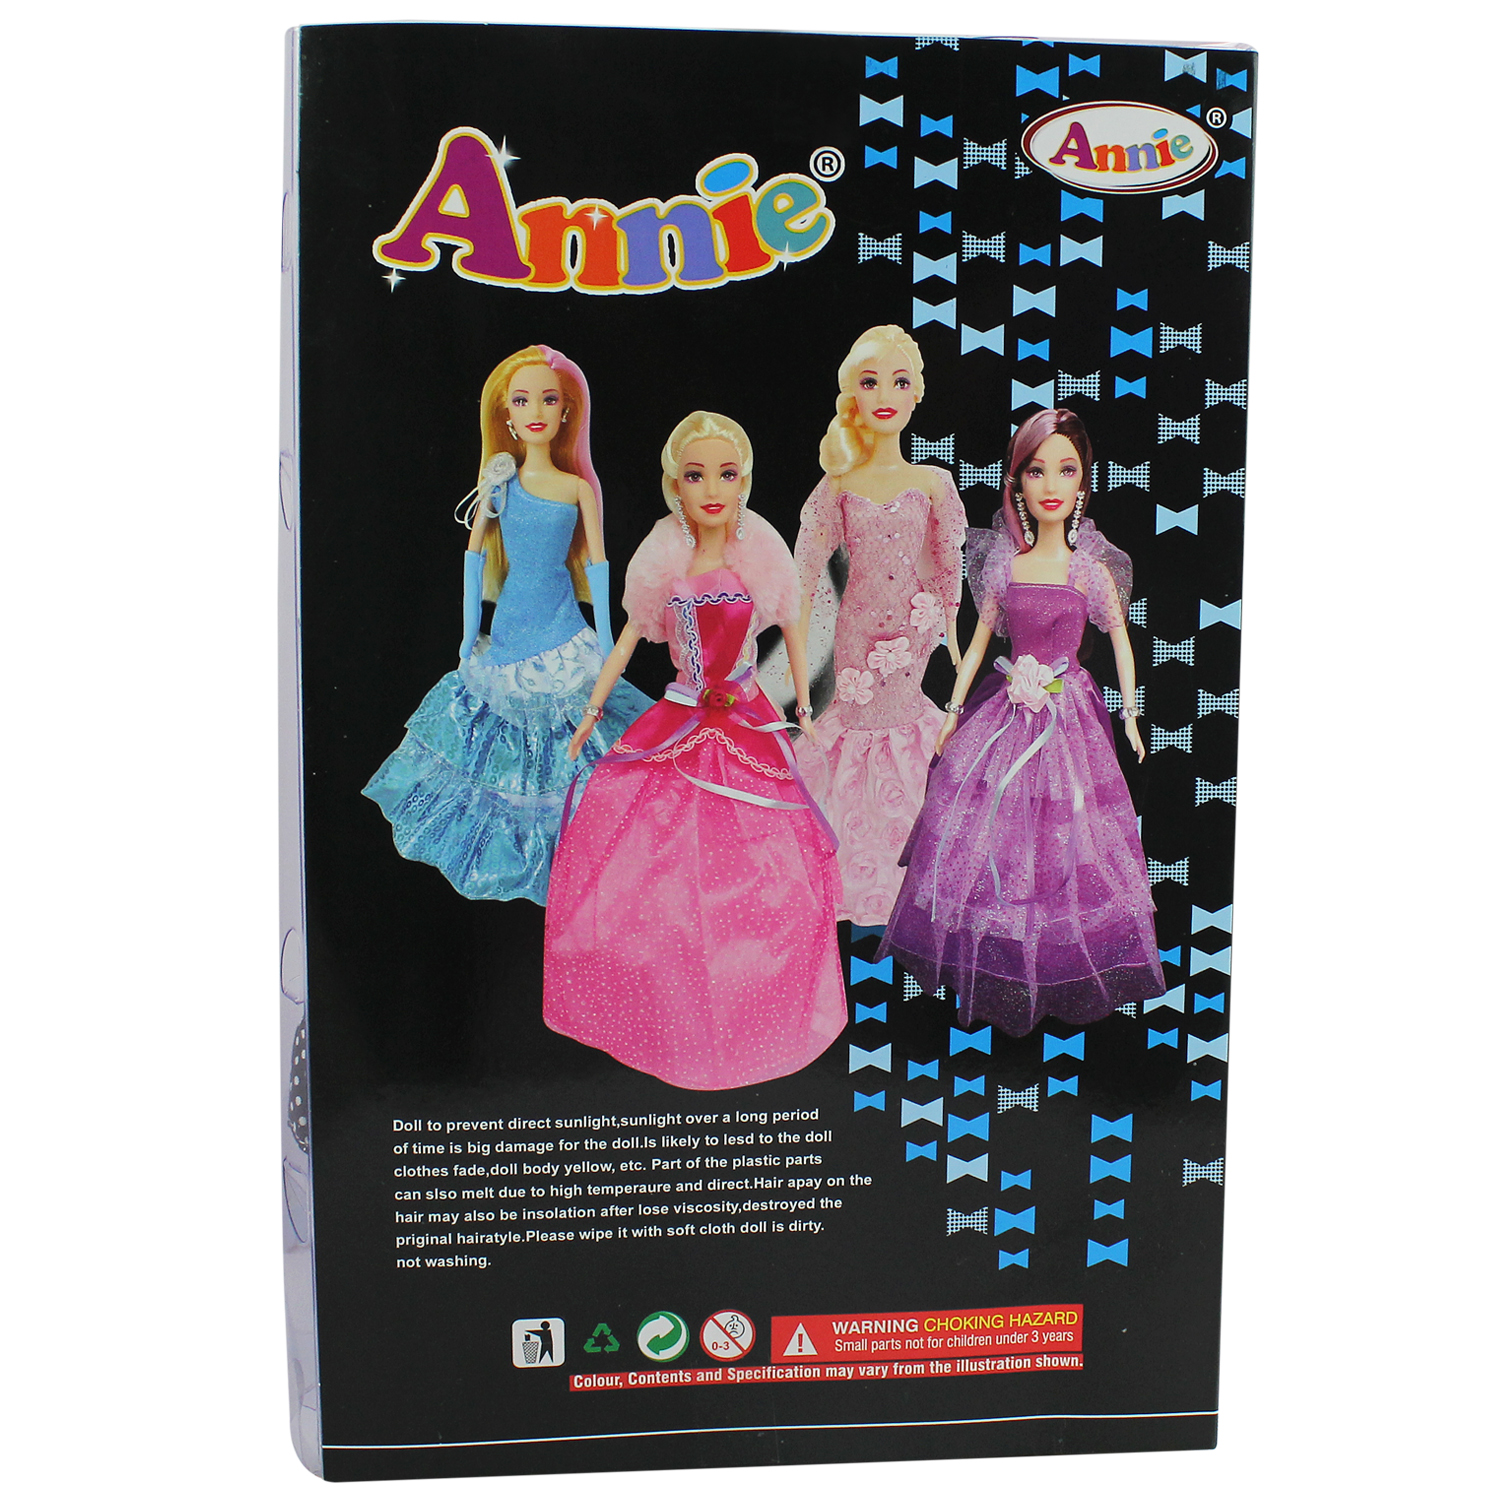 Annie Fashion Style Beautiful With Extra Dress | Superb Doll | Party Style | Doll Size 30 Cms (11.8 Inches)